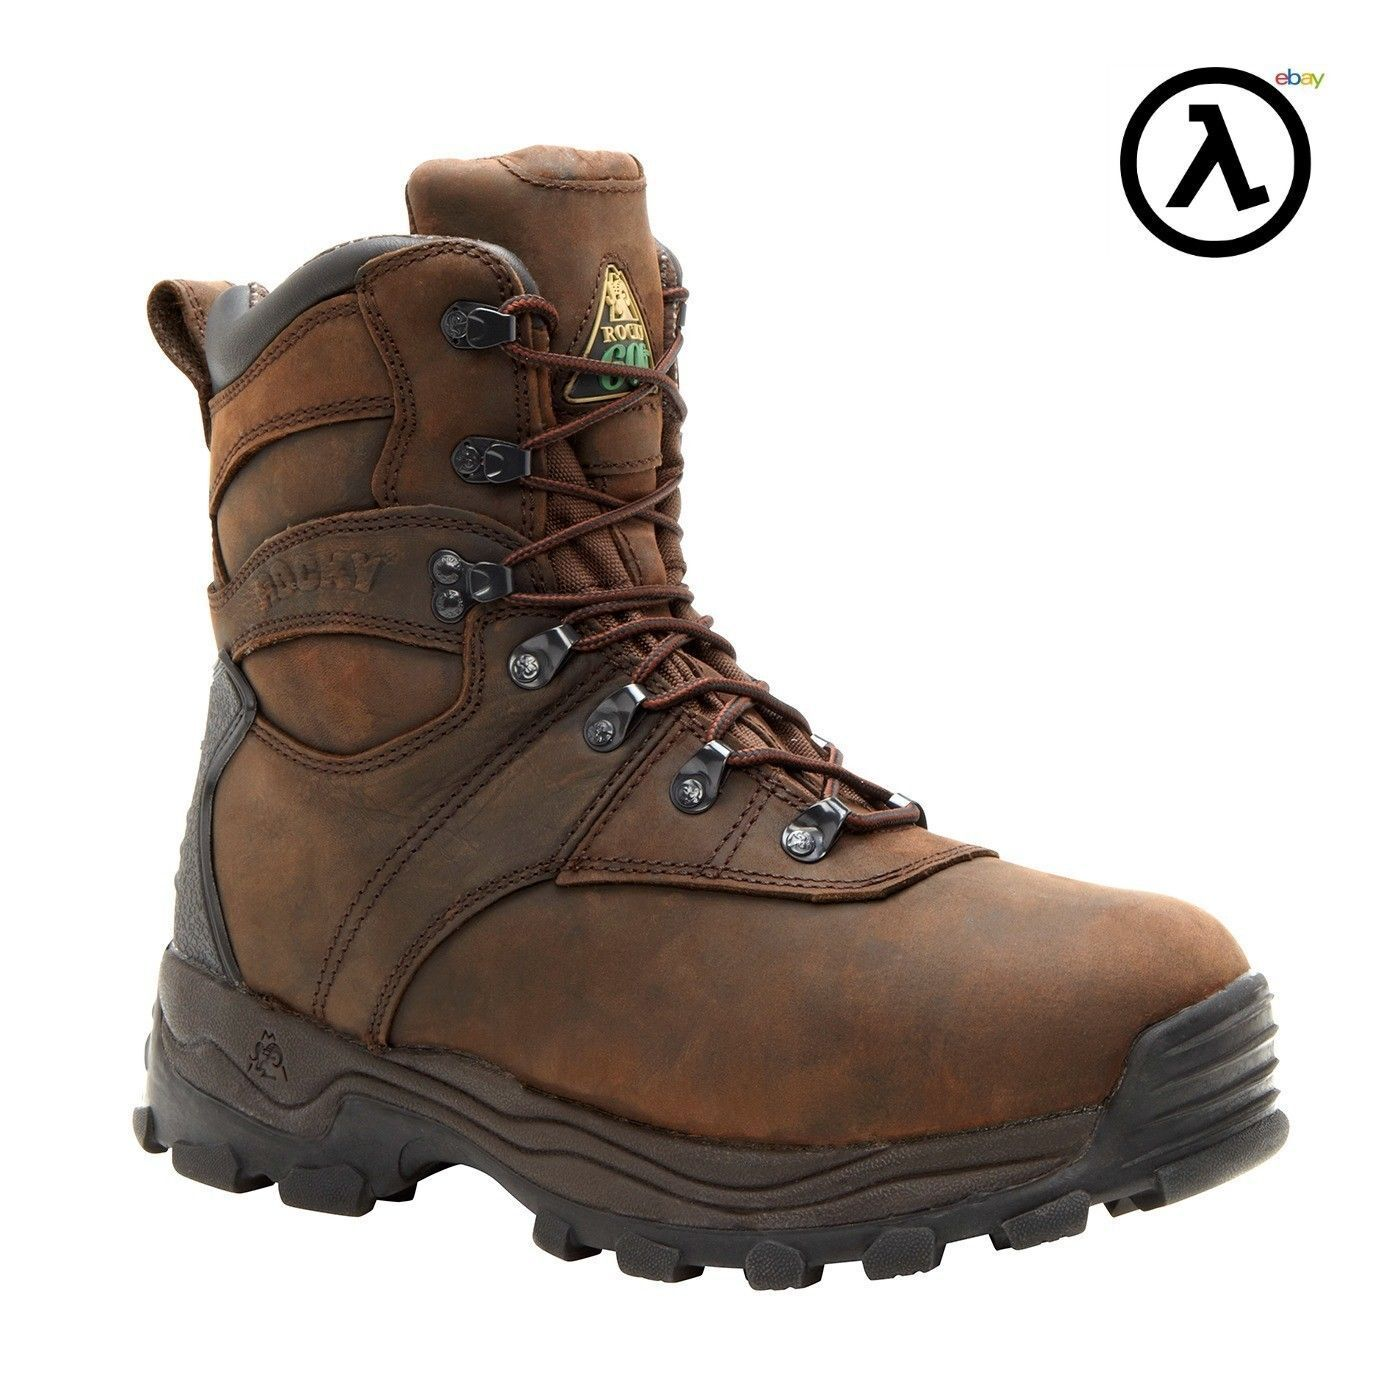 ROCKY SPORT UTILITY PRO 600g INSULATED WATERPROOF Stiefel 7480  ALL GrößeS - NEW